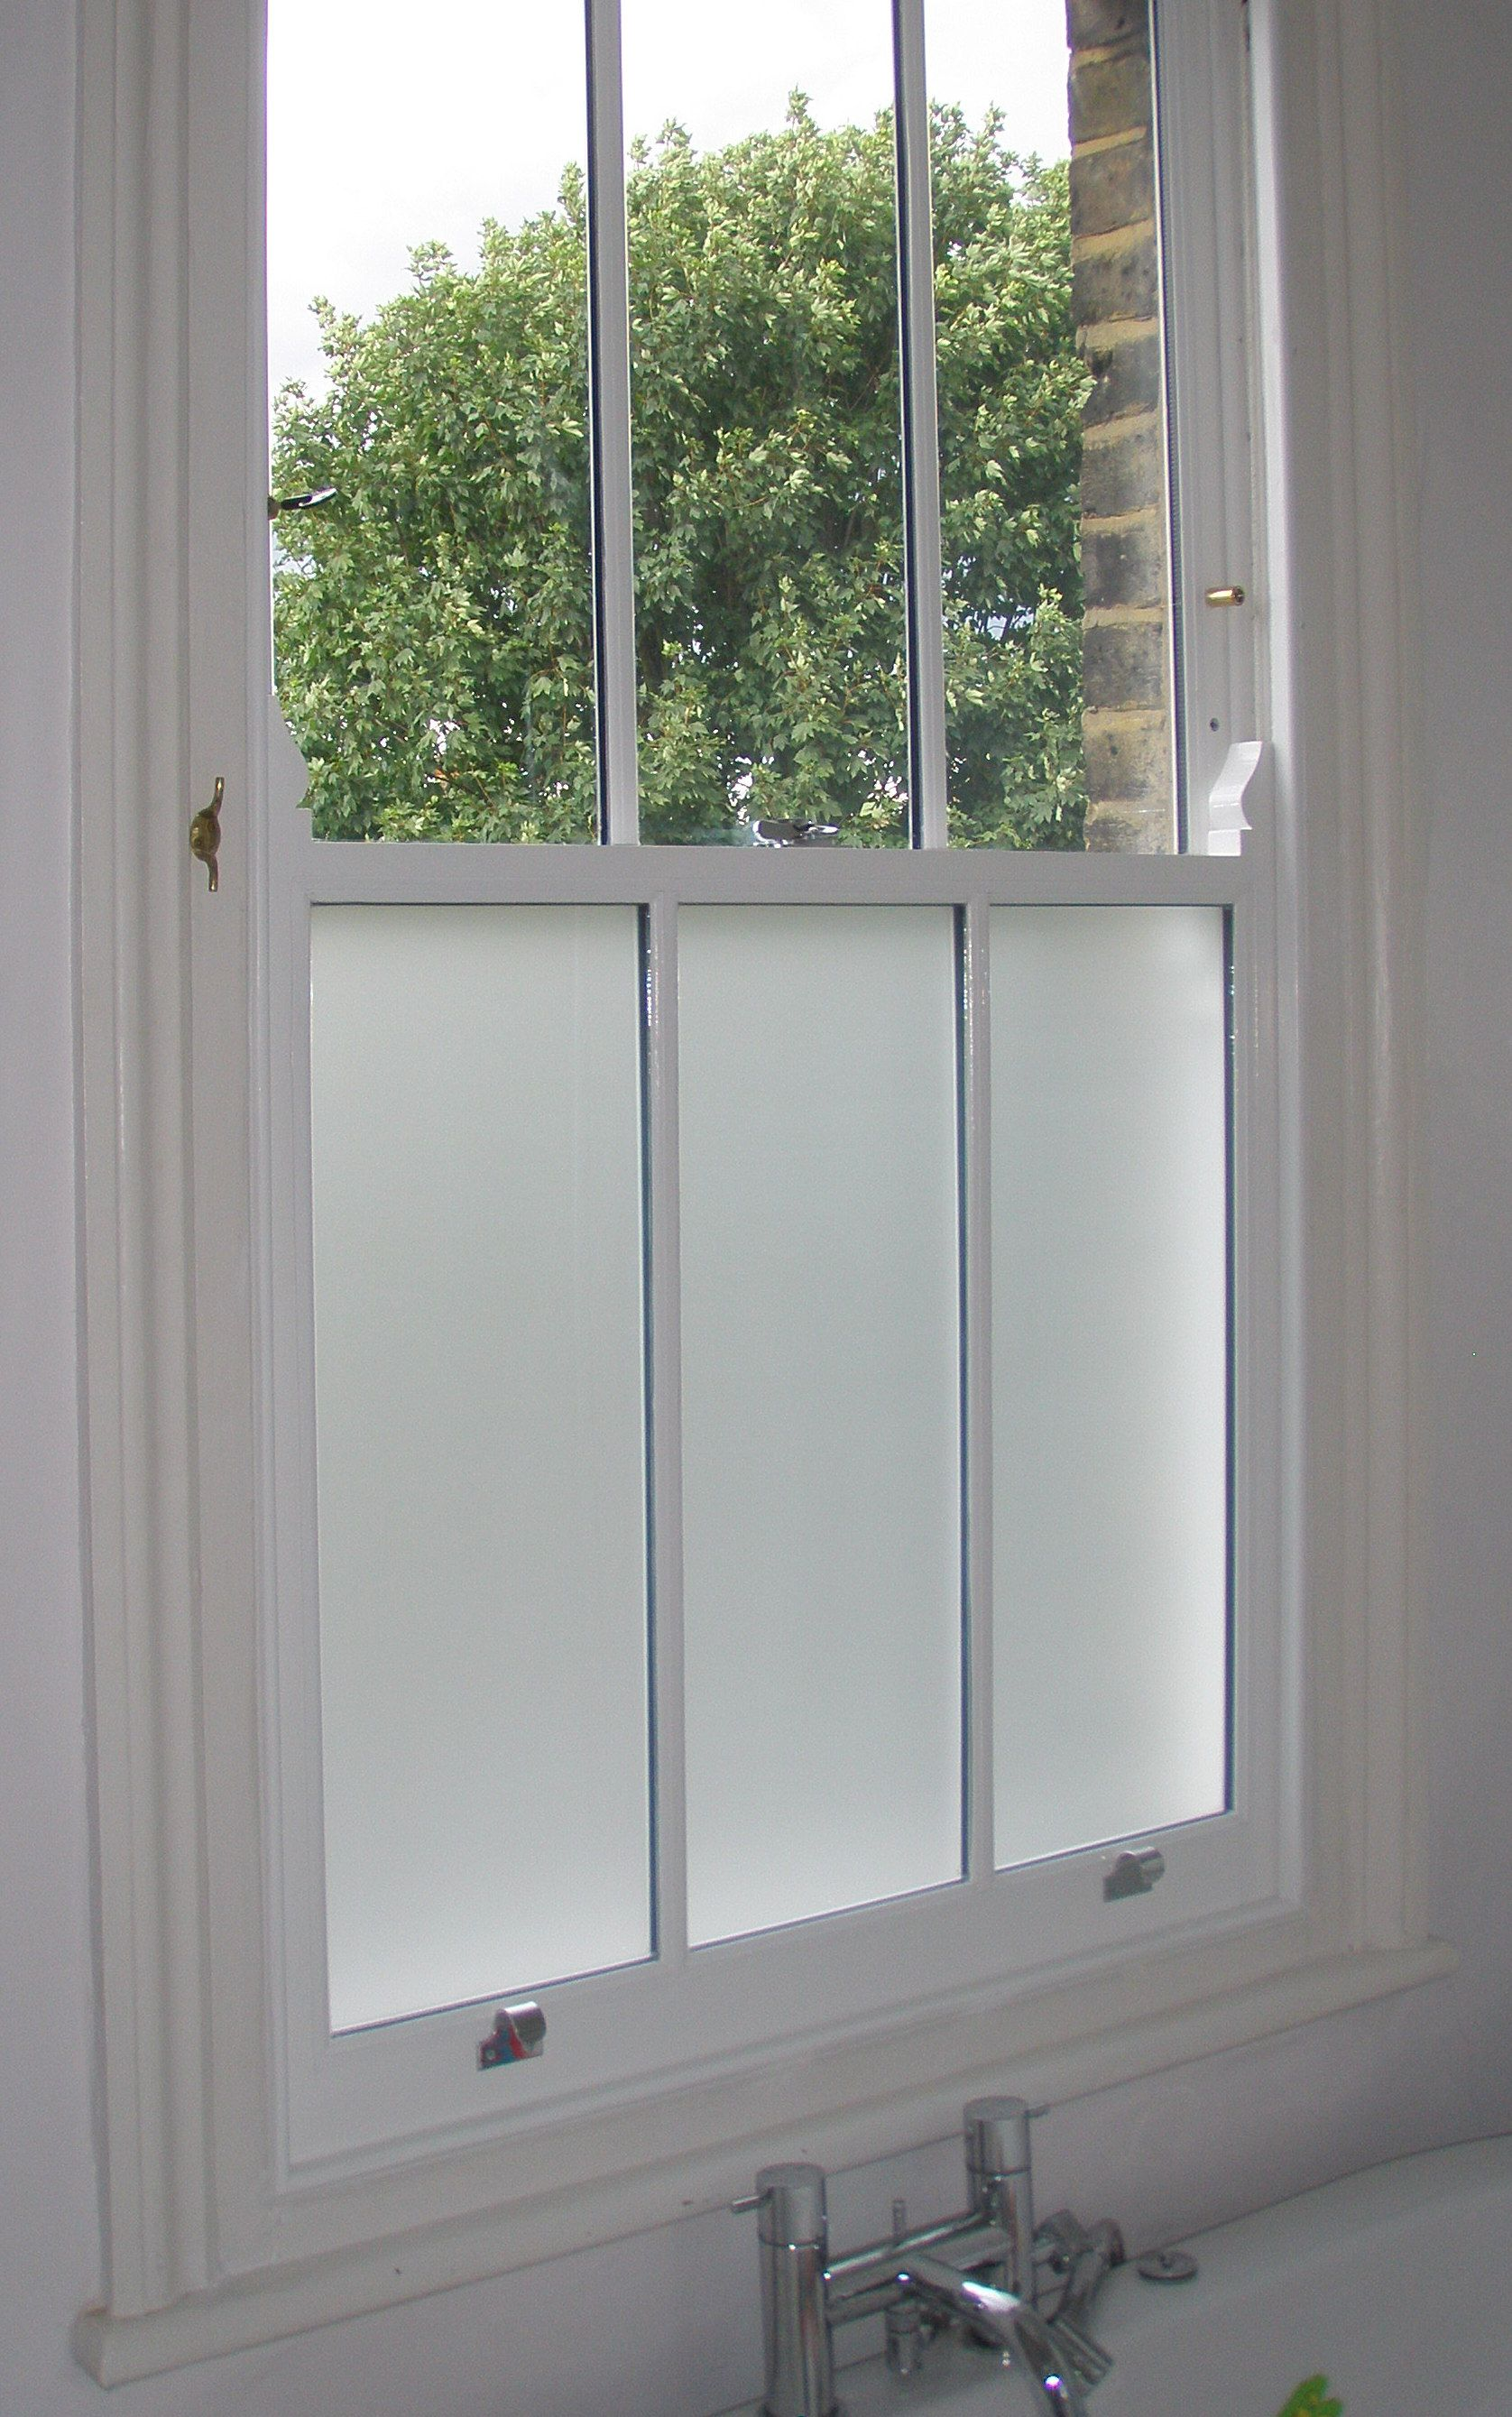 This Double Glazed Sash Window In A Bathroom Has The Added Benefit Of Sandblasted Privacy Glass In The Lowe Bathroom Windows Window Privacy Blue Bathroom Decor